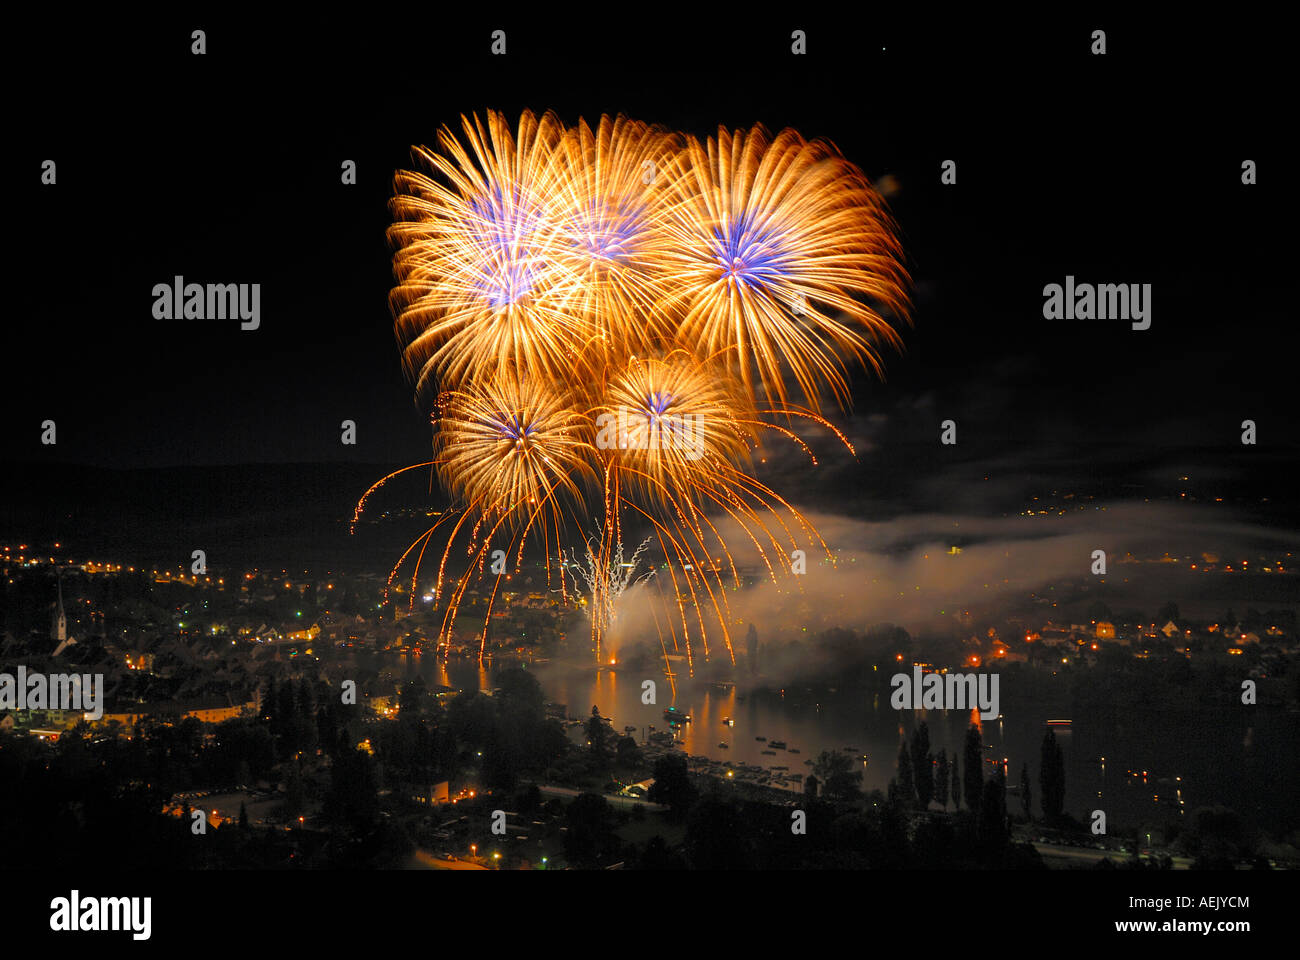 Stein am Rhein - Fireworks over the rhineriver on the occasion of Swiss national holiday. Switzerland, Europe. Stock Photo